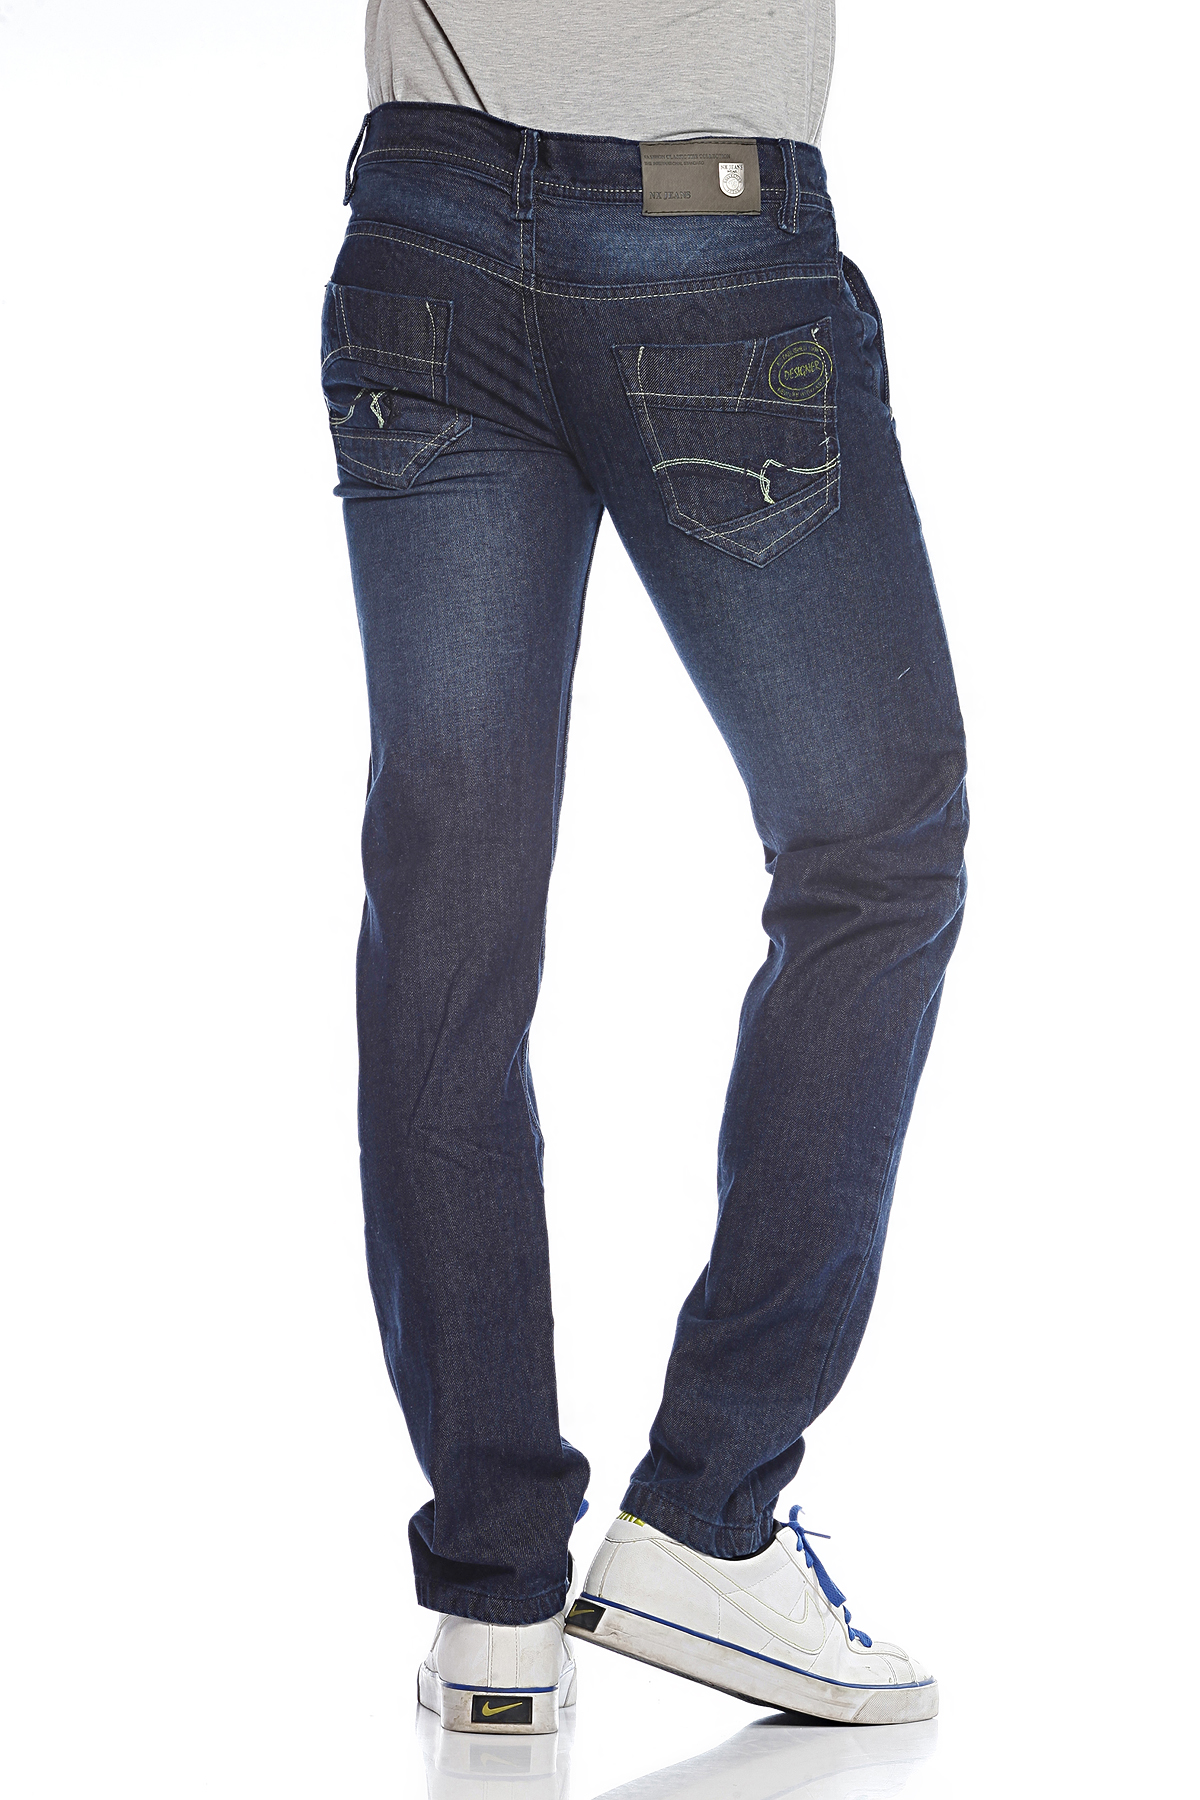 DS Black Fashionable Skinny Fit Faded Jeans